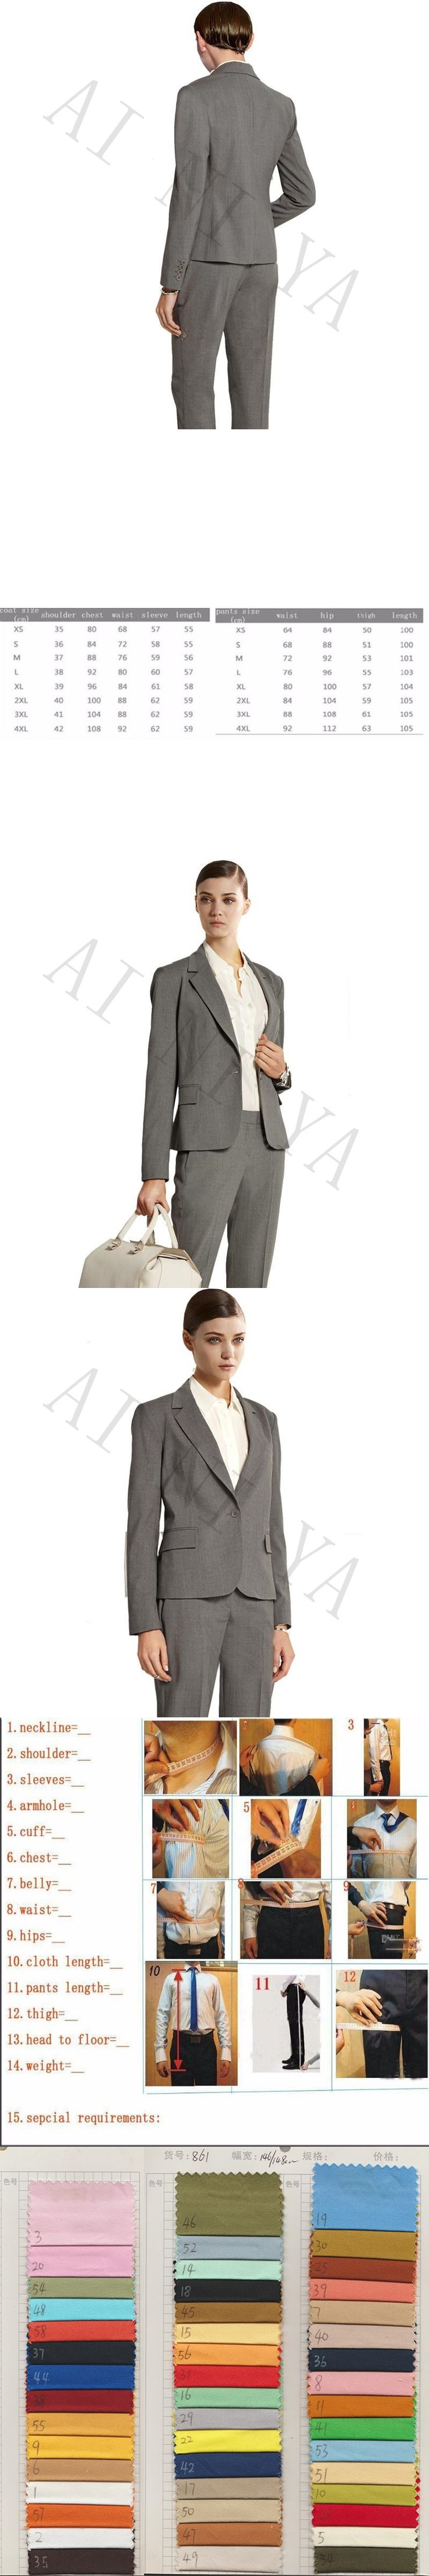 Jacket+Pants Women Business Suits Mid-Gray Single Breasted Female Office Uniform Evening Wedding Formal Ladies Trouser Suit